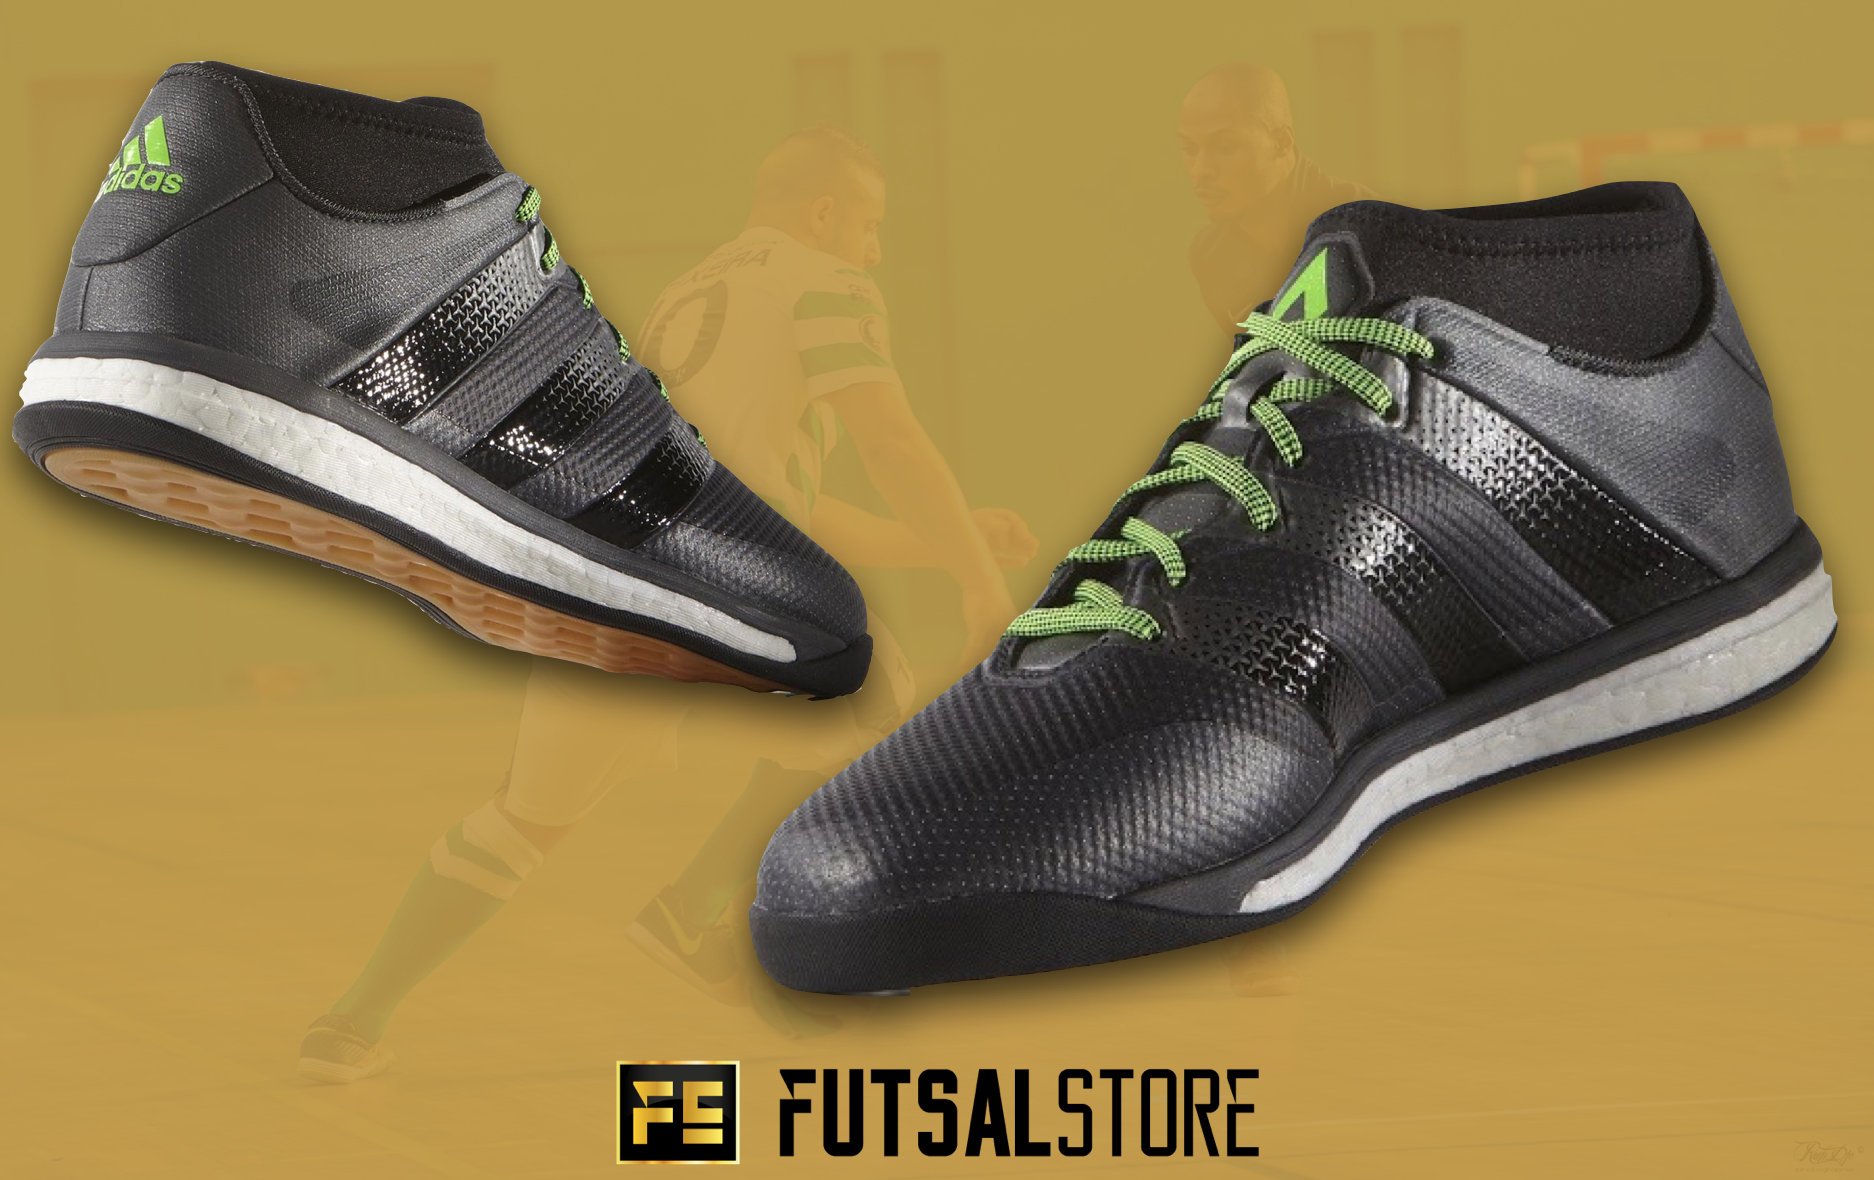 Test Chaussures Des Le 16 Experts 3 Futsalstore Adidas tqHwdH8